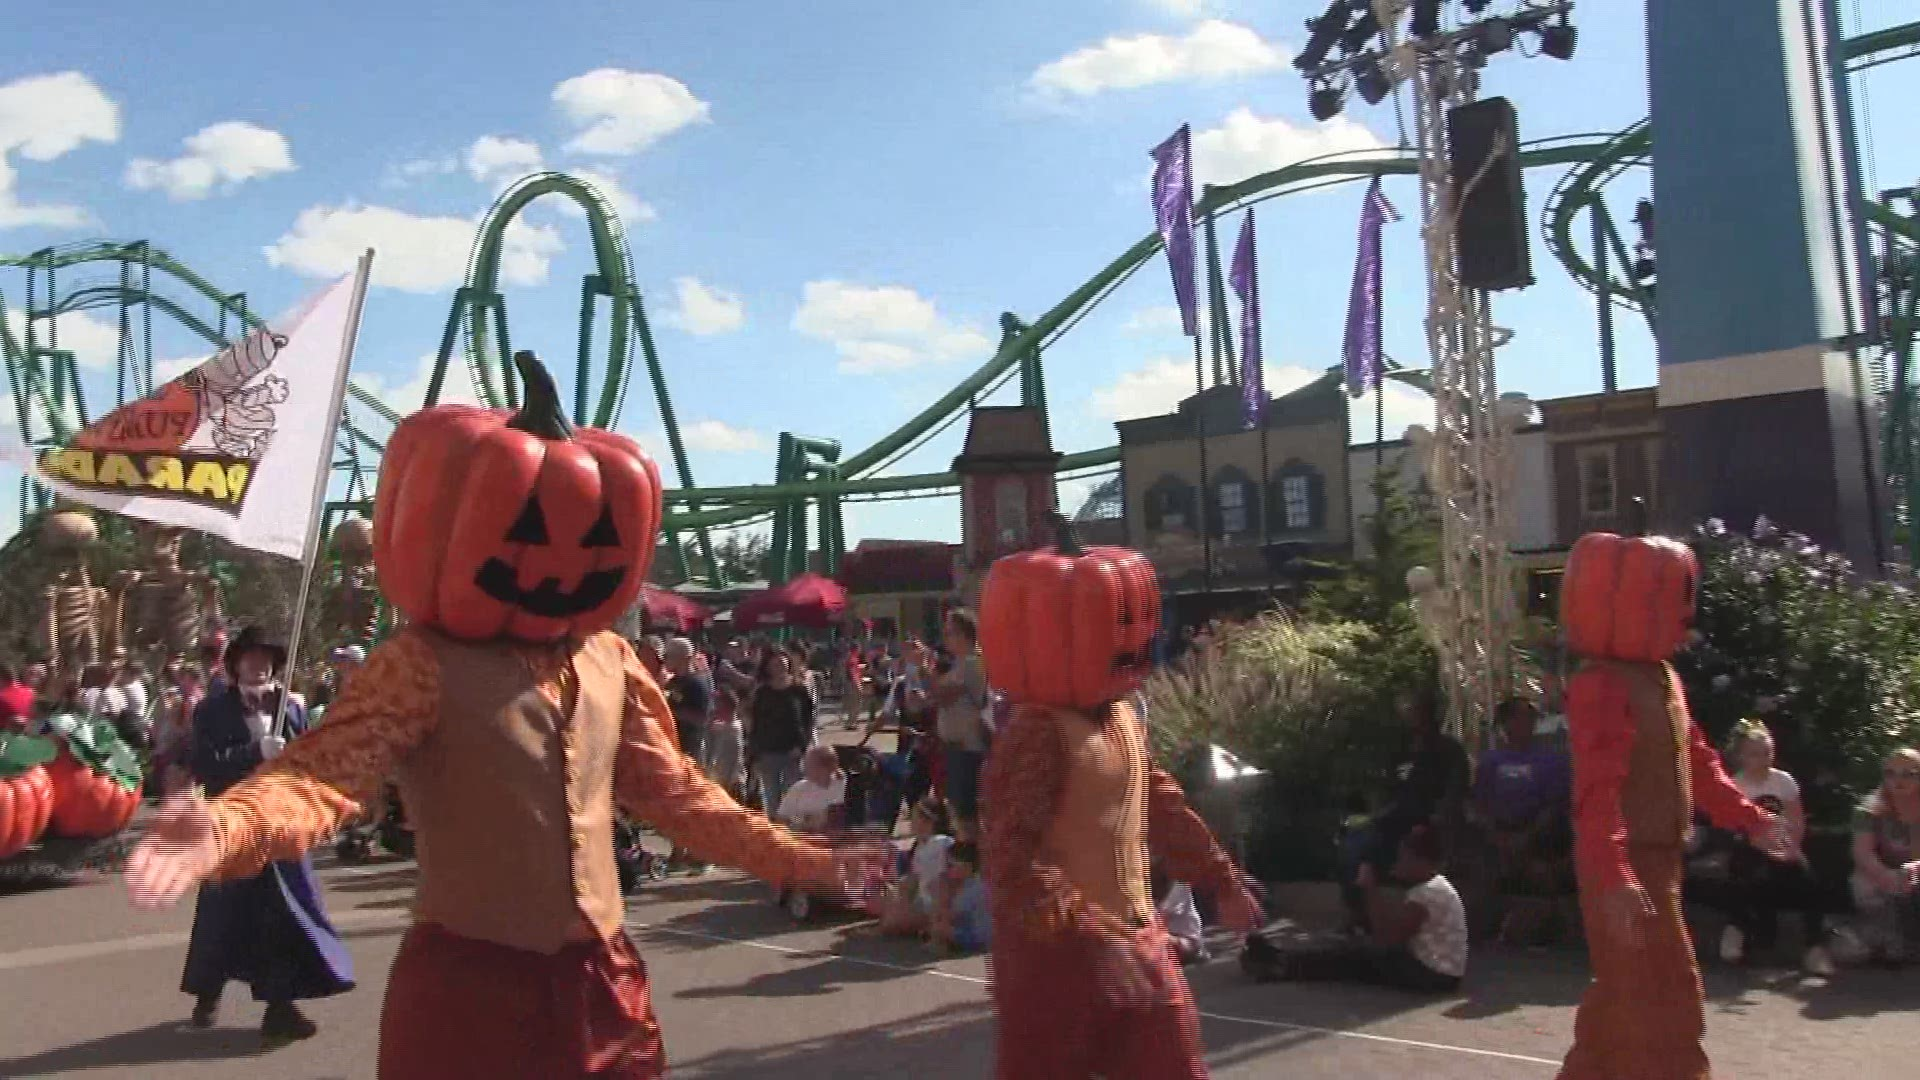 Seattle Halloween Events 2020 Will Cedar Point have HalloWeekends this year? Event canceled